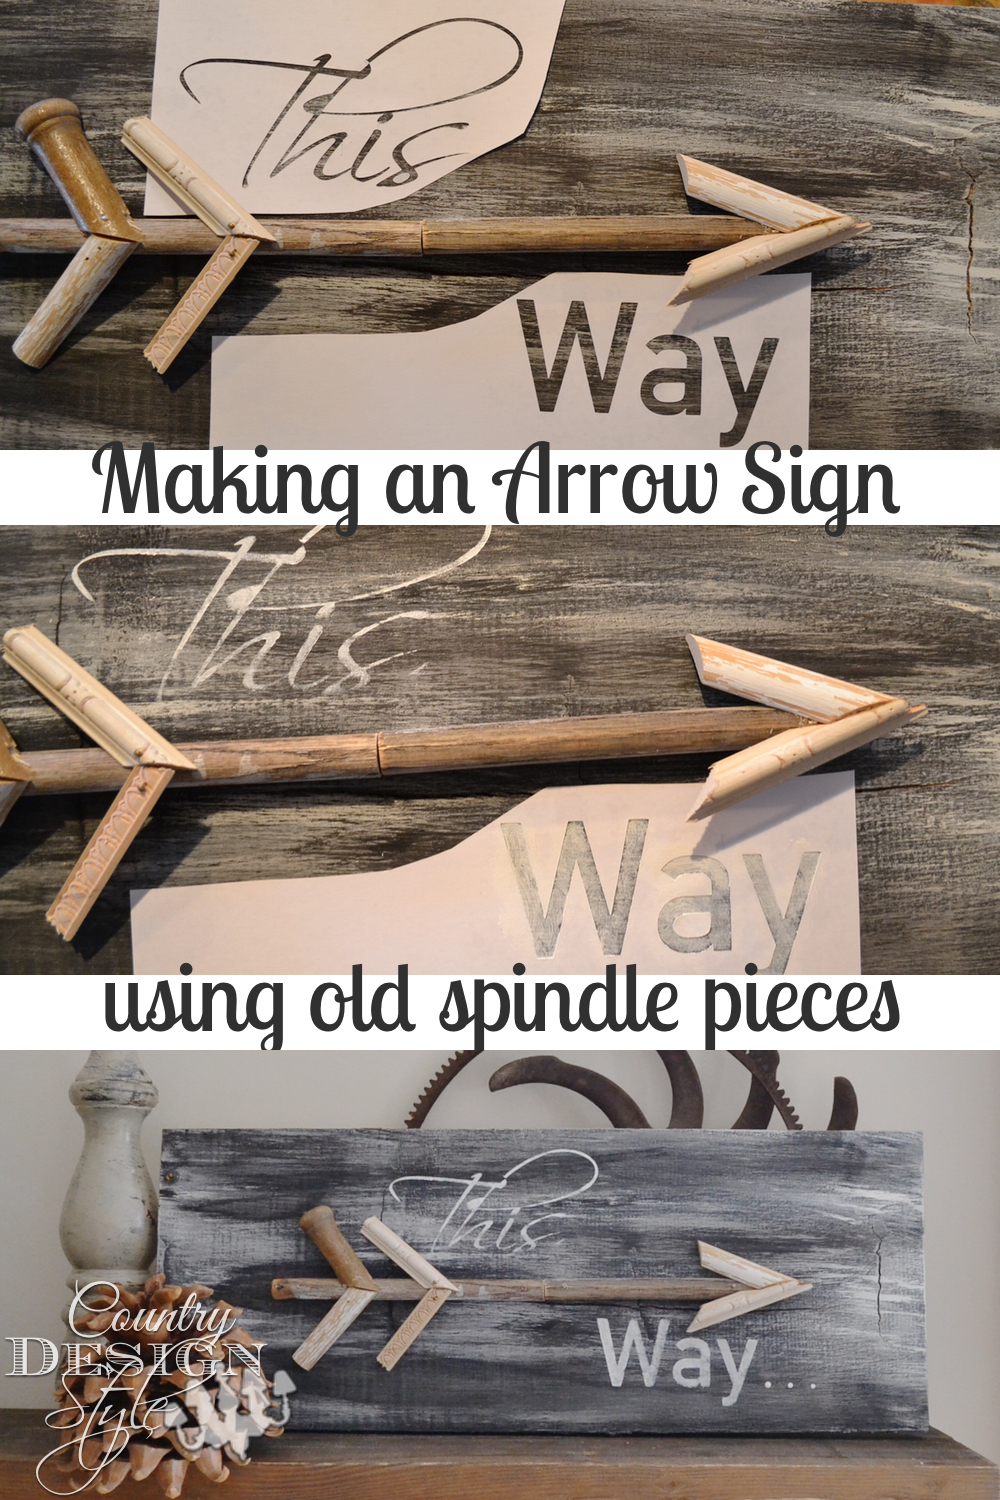 Making an Arrow Sign using old spindle pieces and stencils. Easy DIY project. Country Design Style